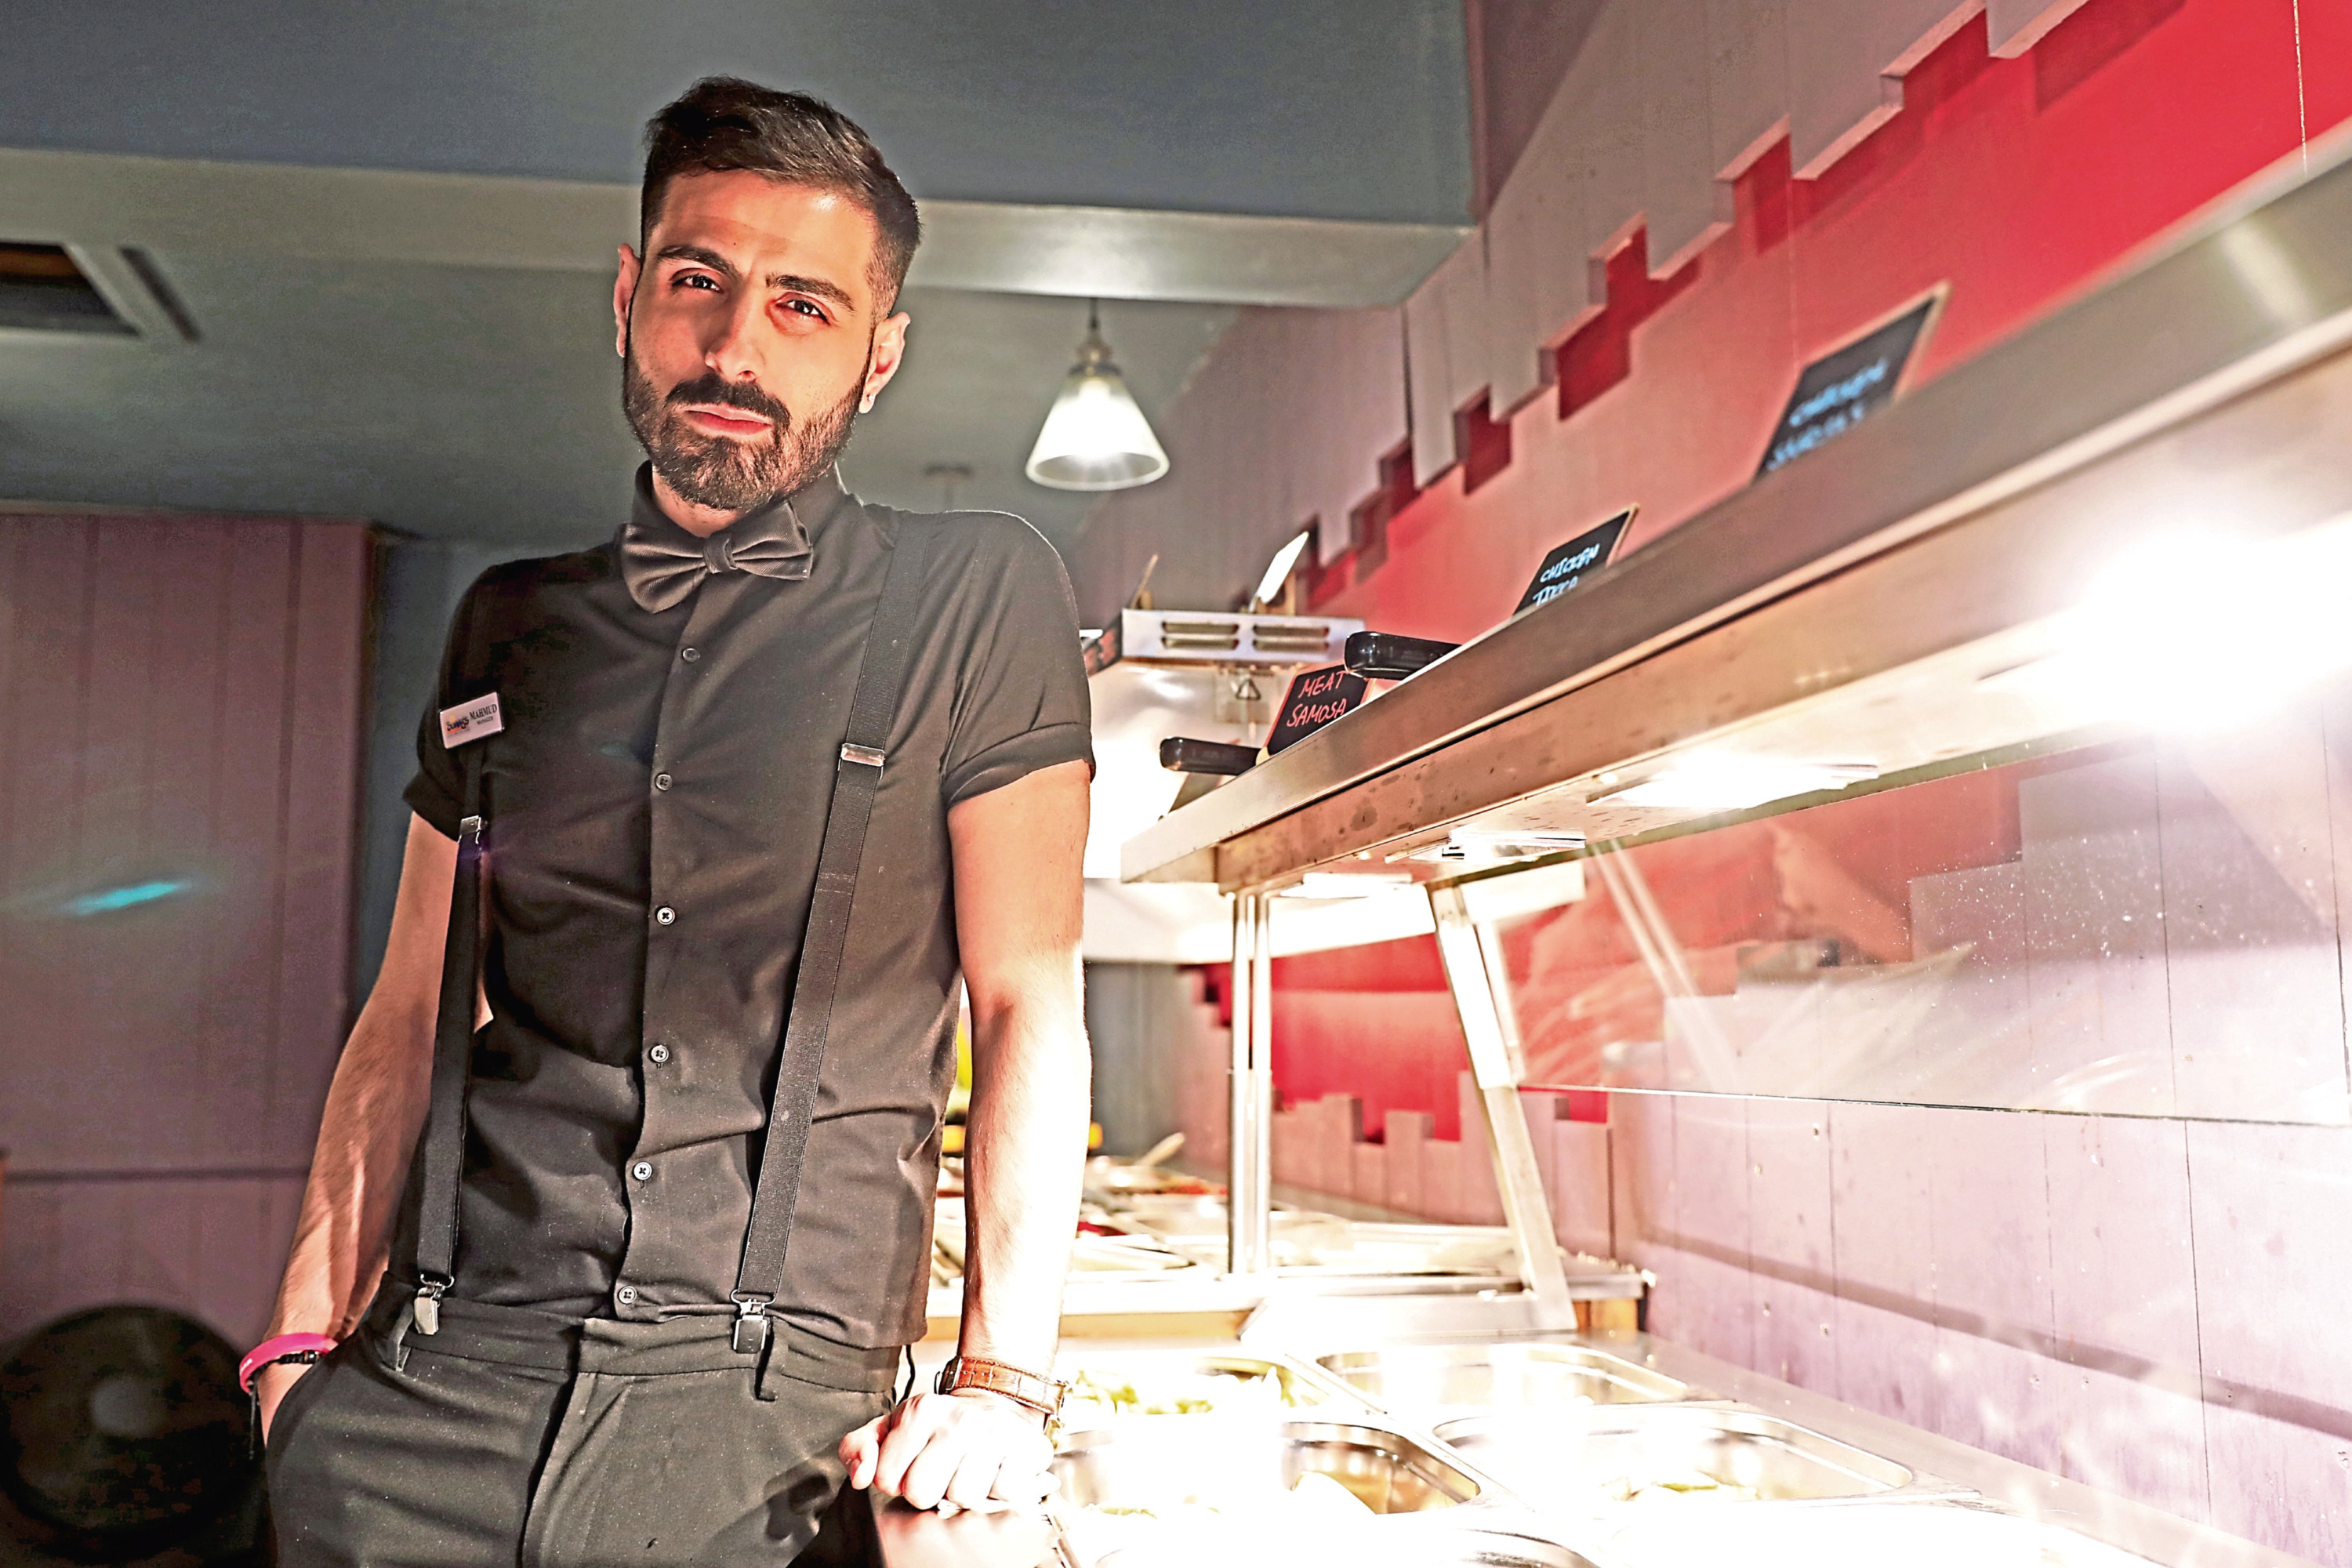 Mahmud Reyani, manager of Sunny's in Whitehall Crescent